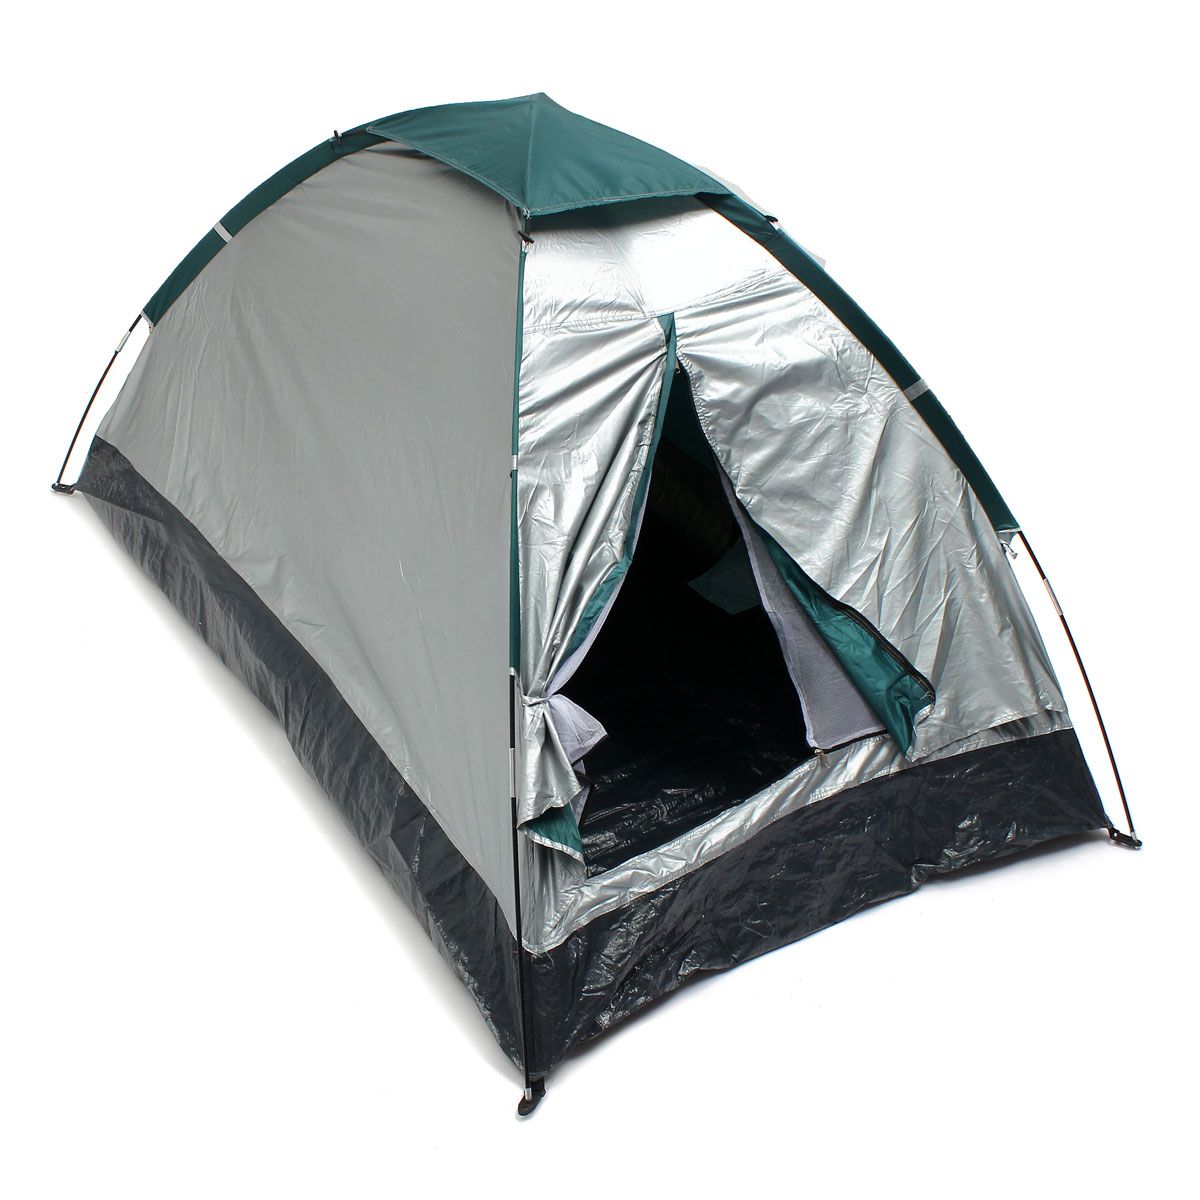 ФОТО Hot Sale PE Cloth Waterproof PU 3000MM ultralight Single Layer 2 person 4 season outdoor travel Camping hiking Tent